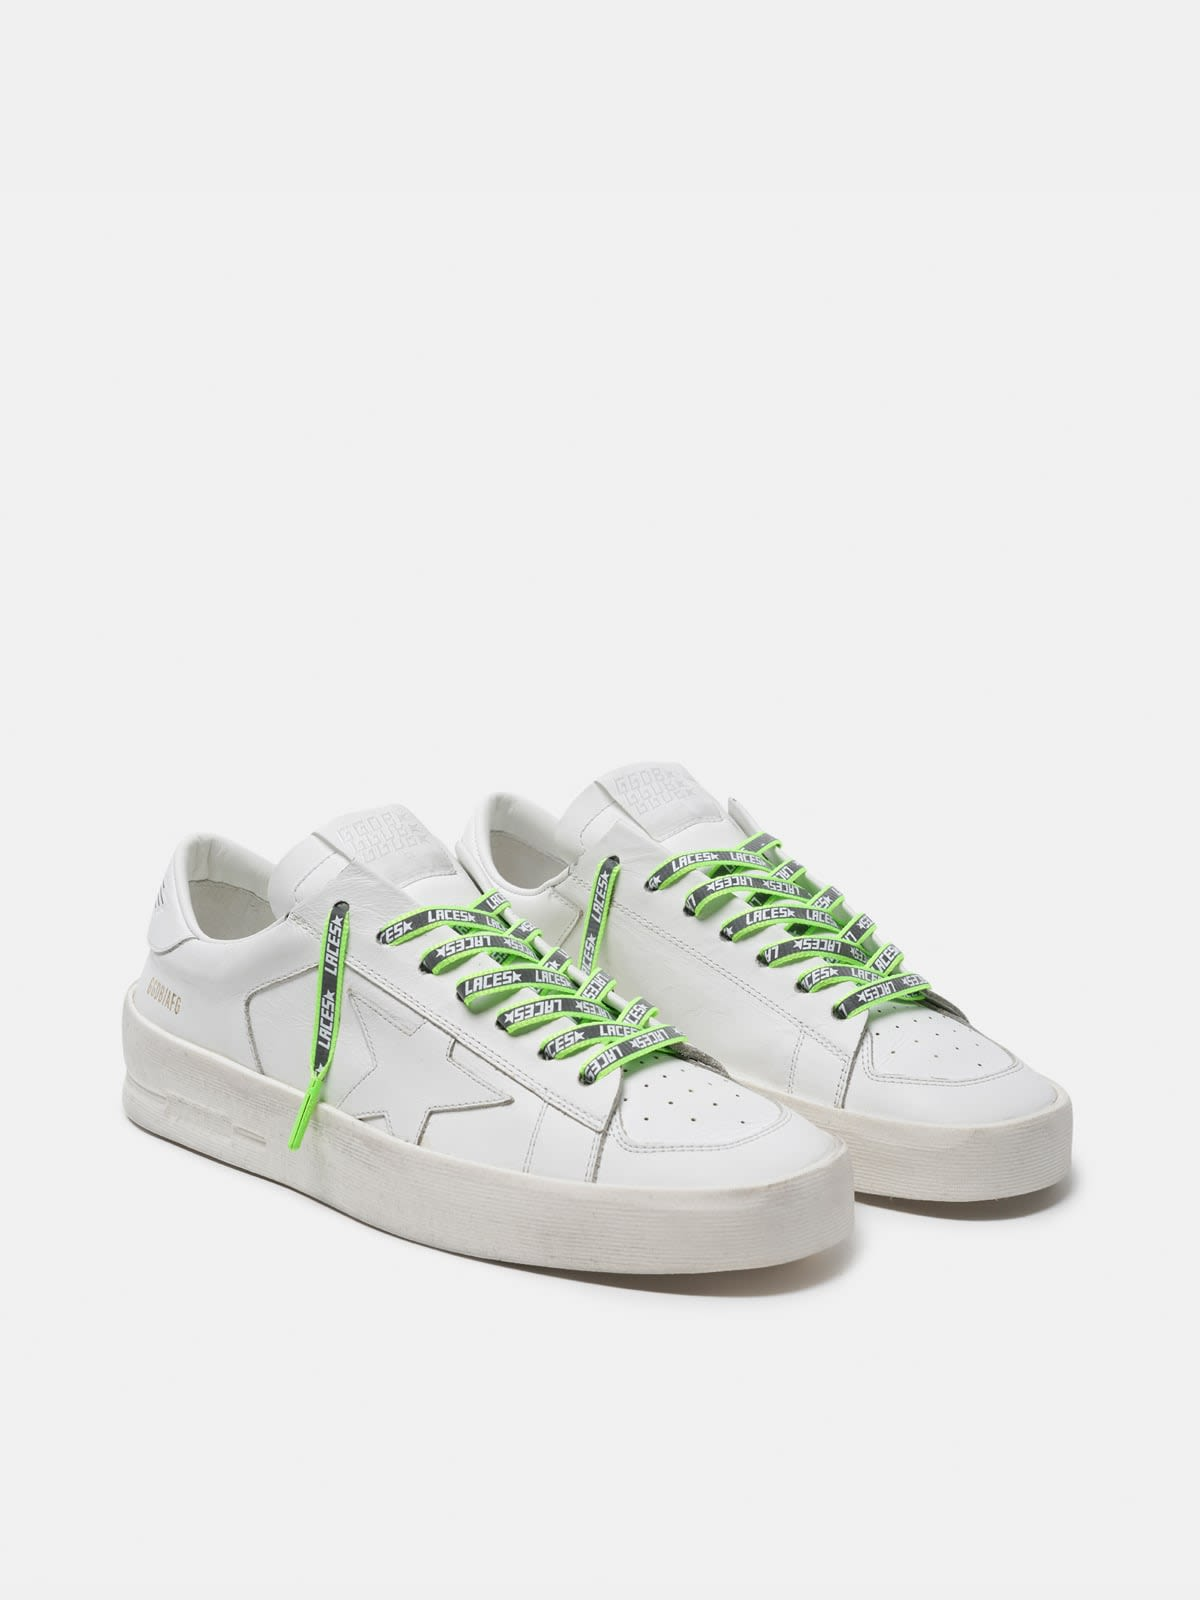 Women's neon green reflective laces with laces print